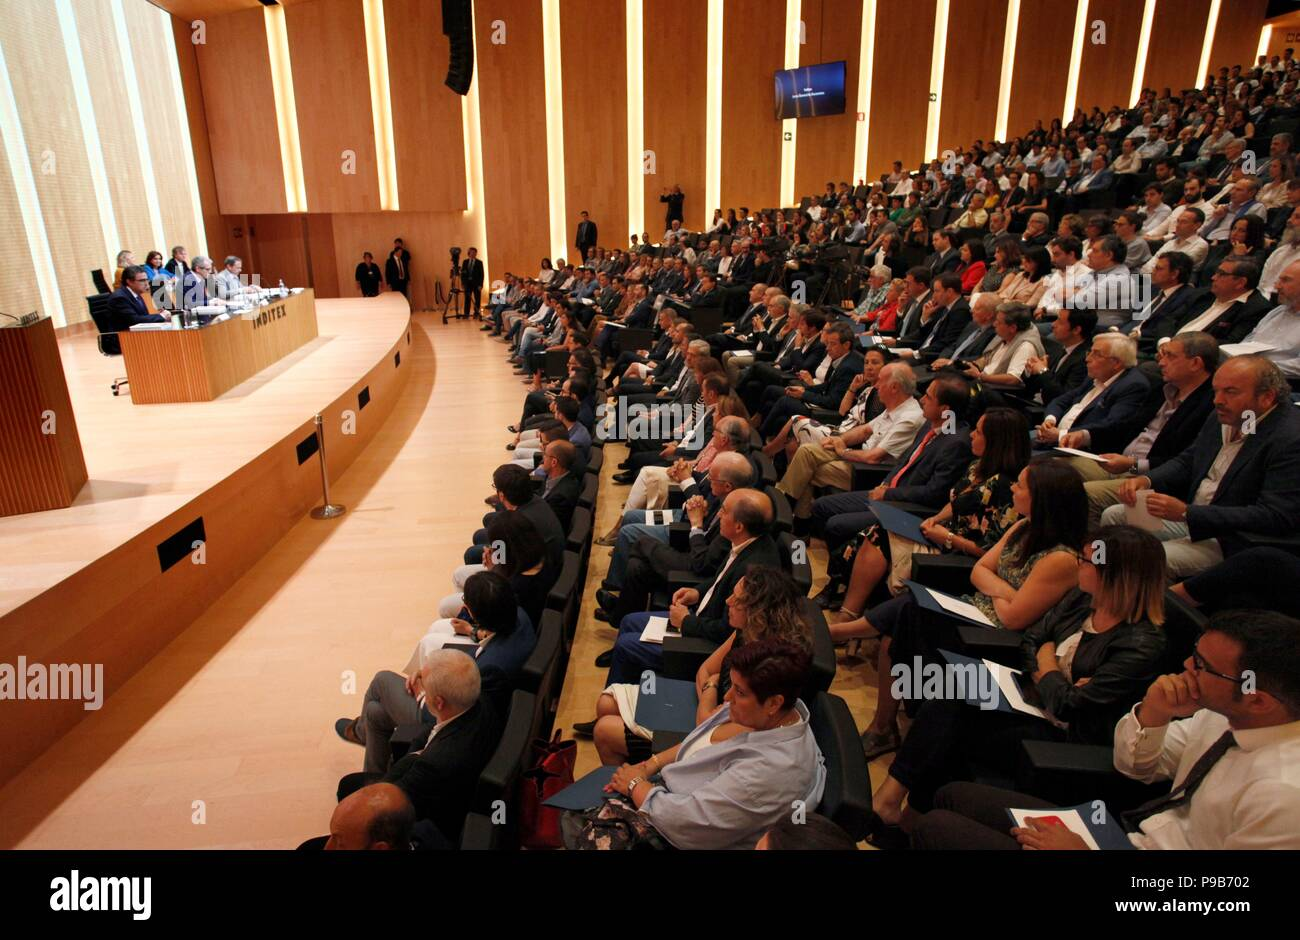 View of the INDITEX's general meeting of shareholders in